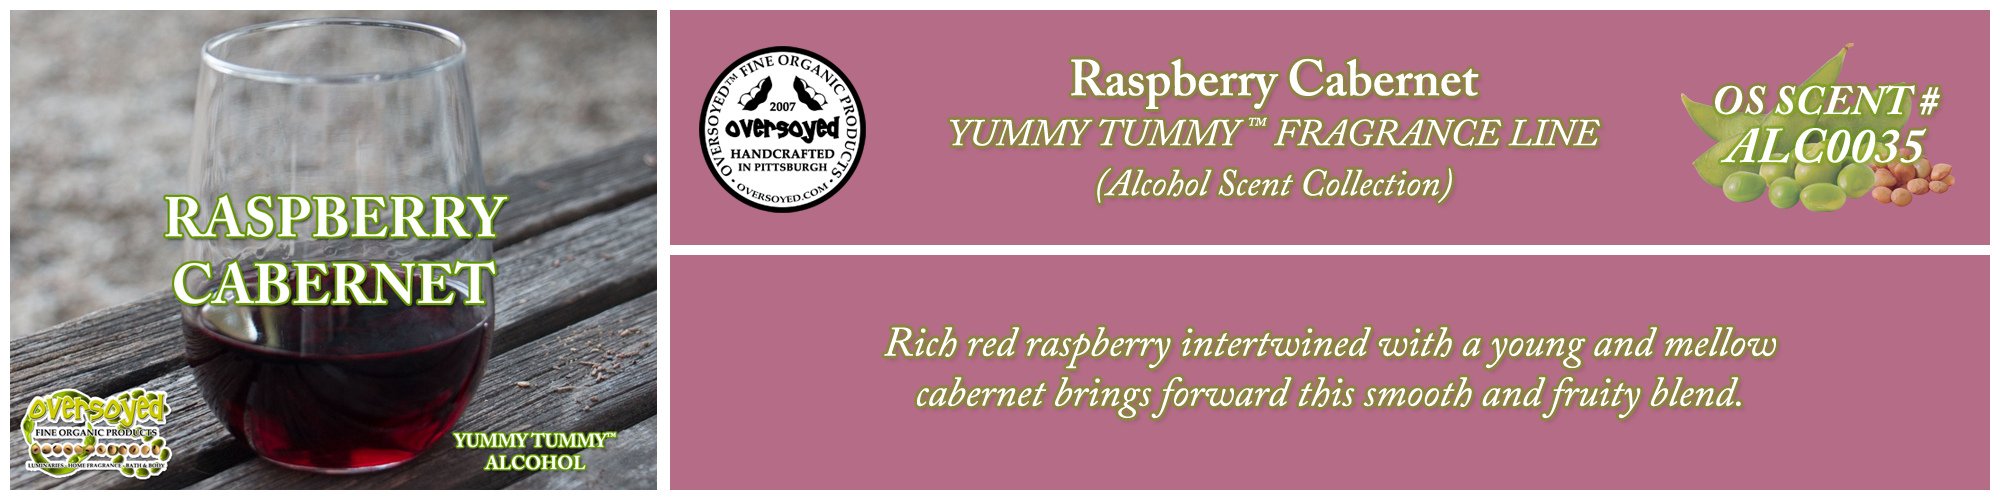 Raspberry Cabernet Handcrafted Products Collection